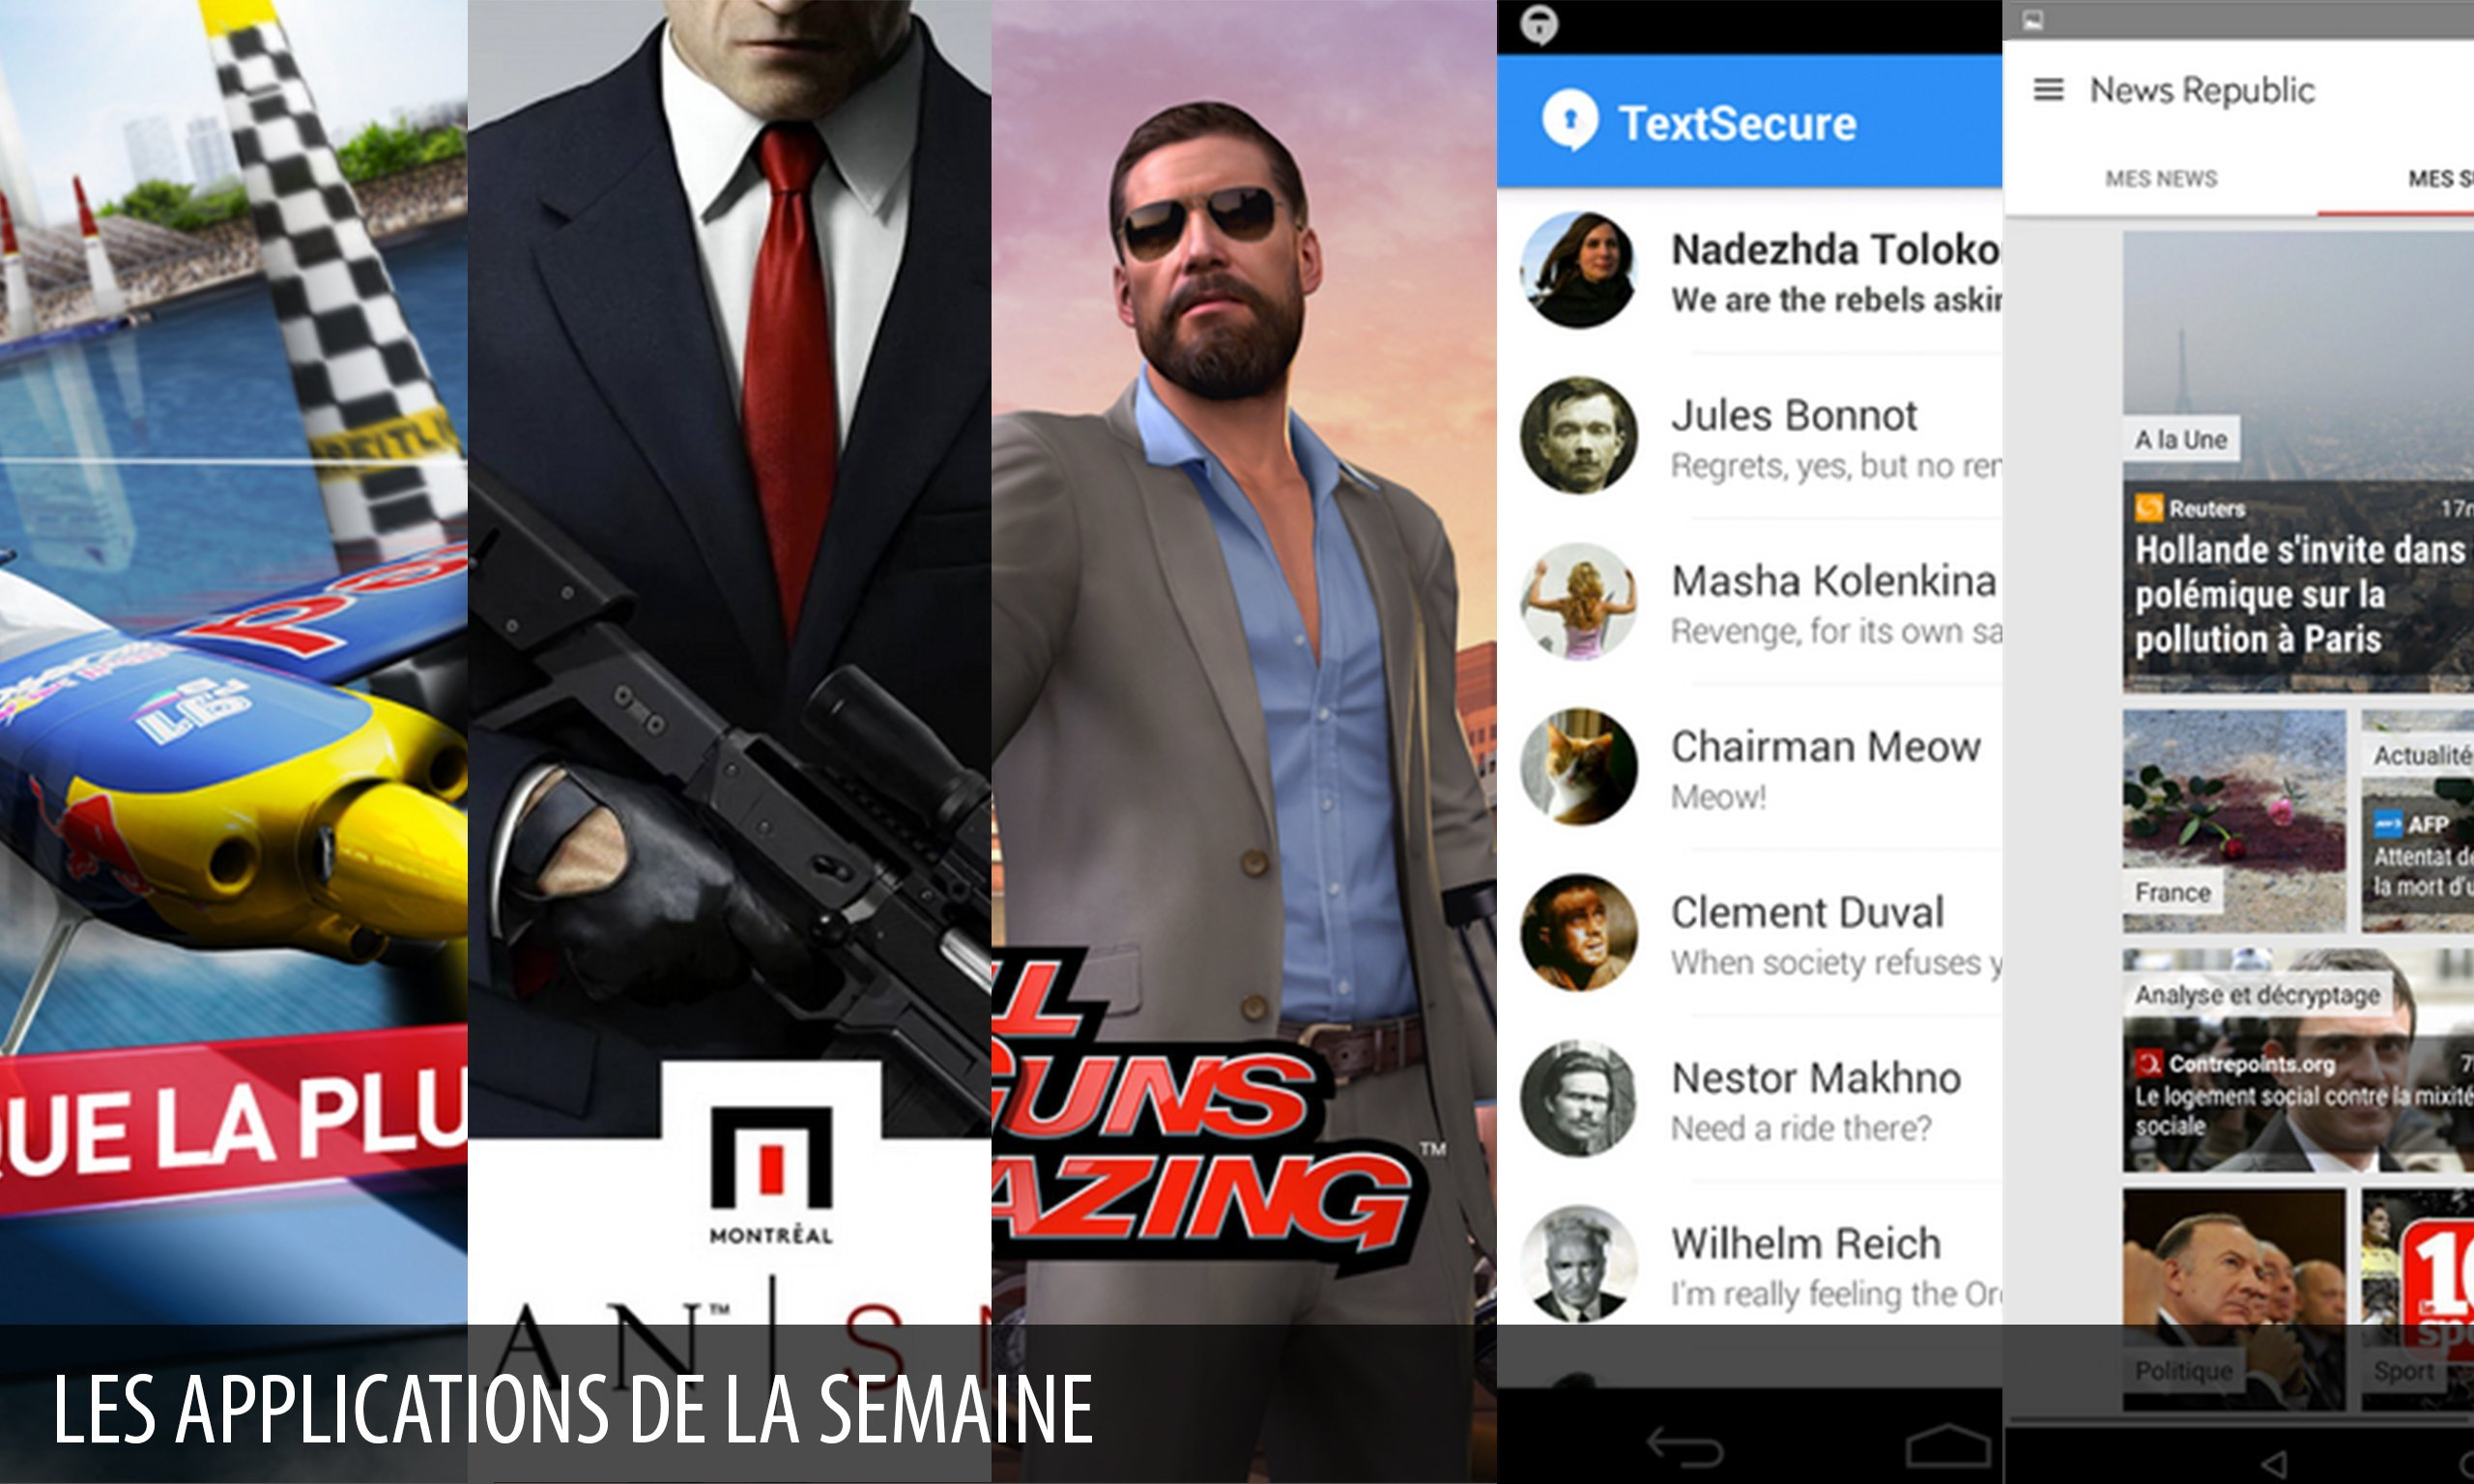 Les apps de la semaine : Red Bull Air Race The Game, Hitman: Sniper, All Guns Blazing, TextSecure Messagerie Privée, News Republic – Actualités